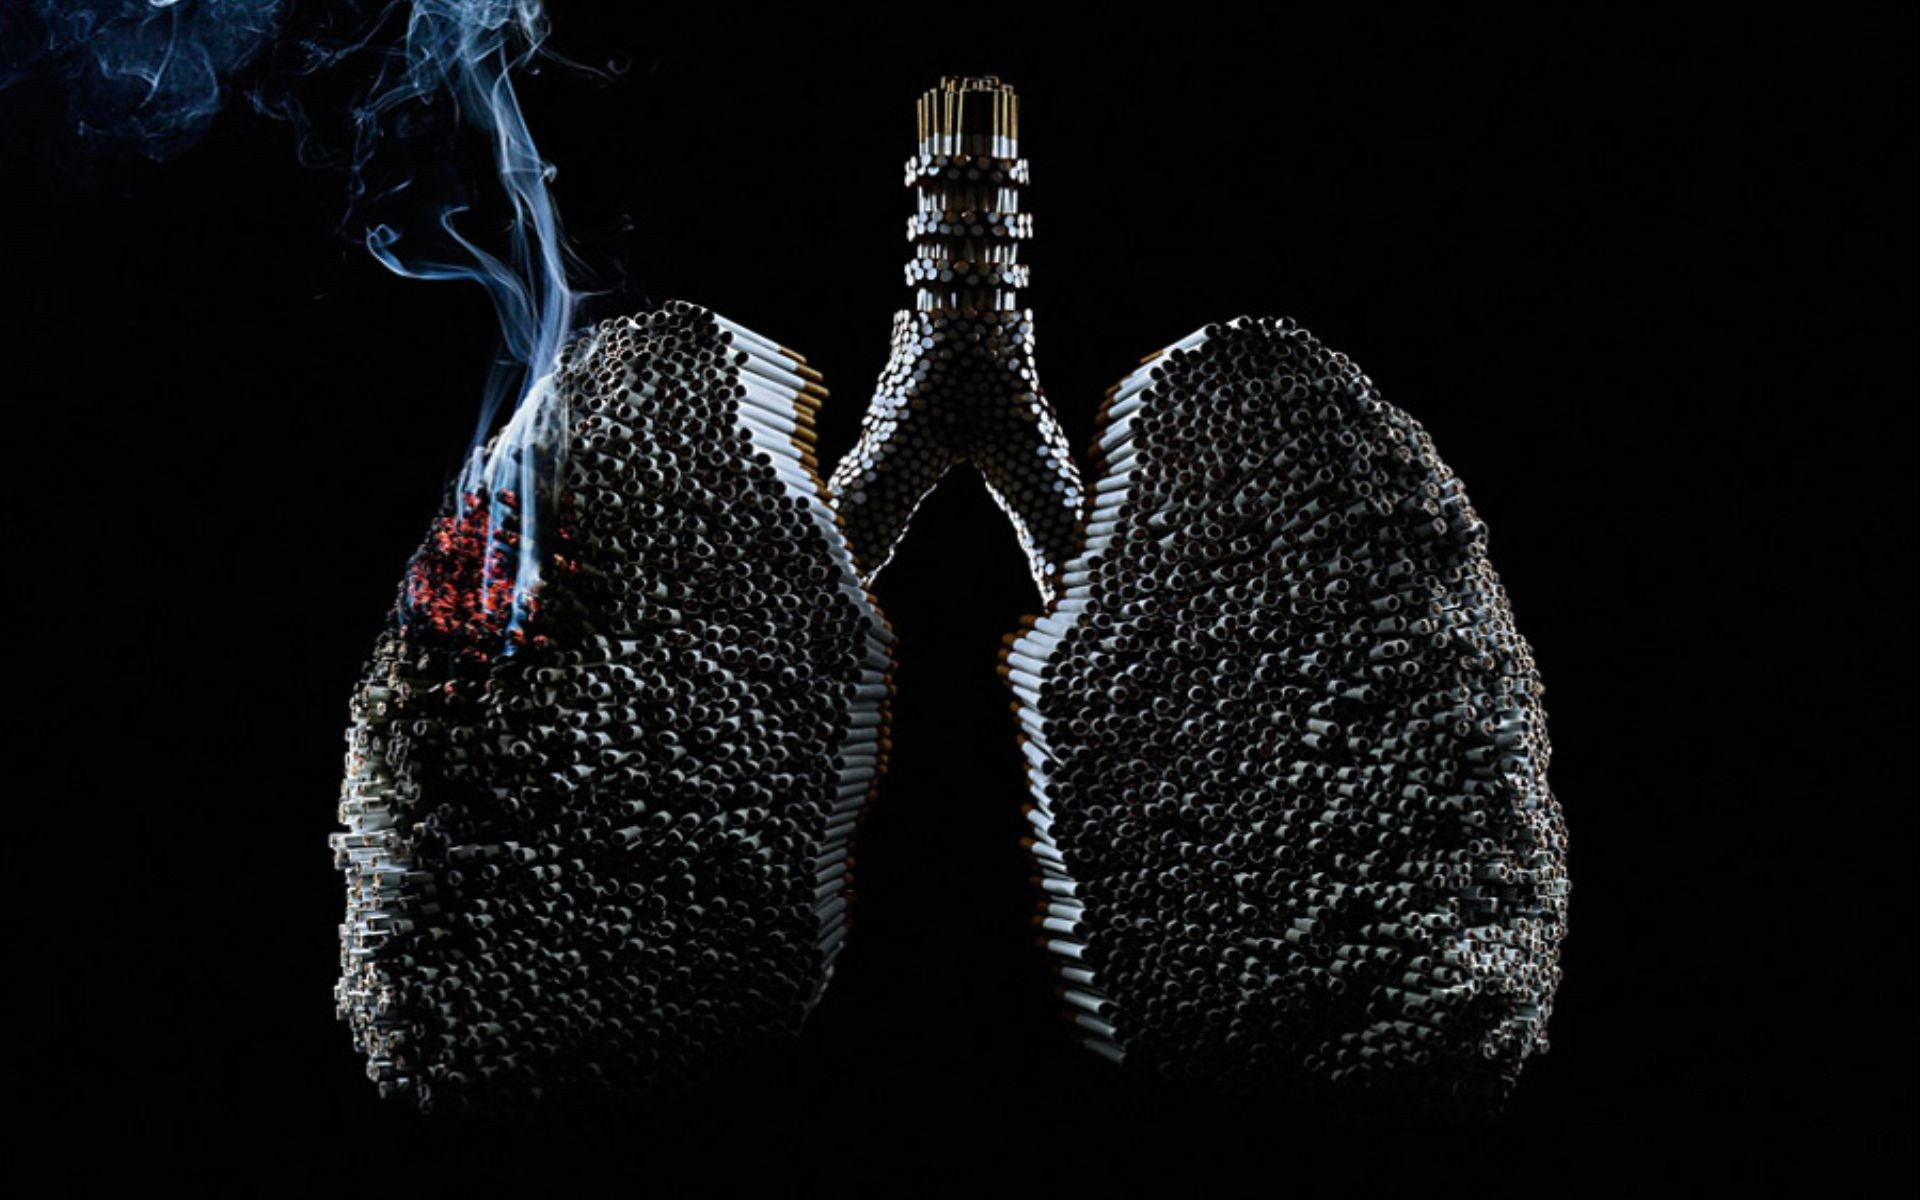 Lung cancer pictures for desktop and wallpaper   Picture for 1920x1200